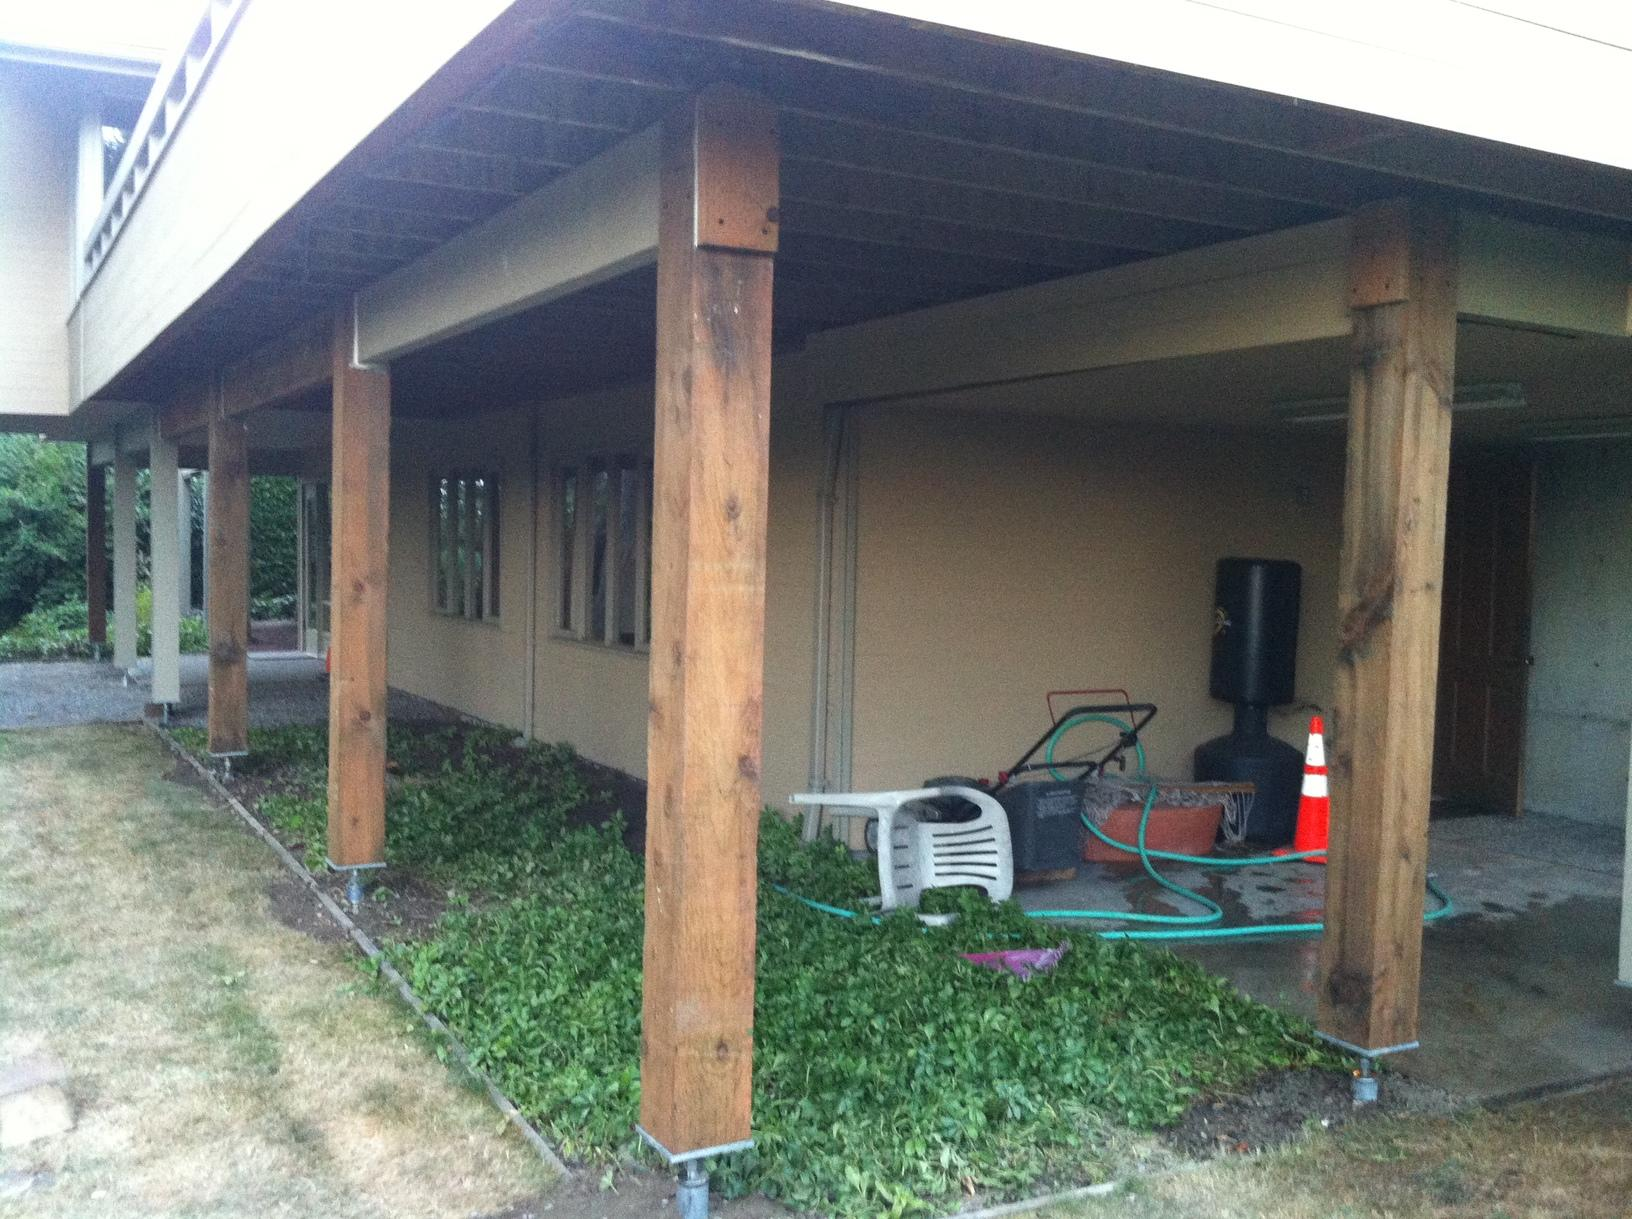 Foundation Repair in Mercer Island, WA - After Photo